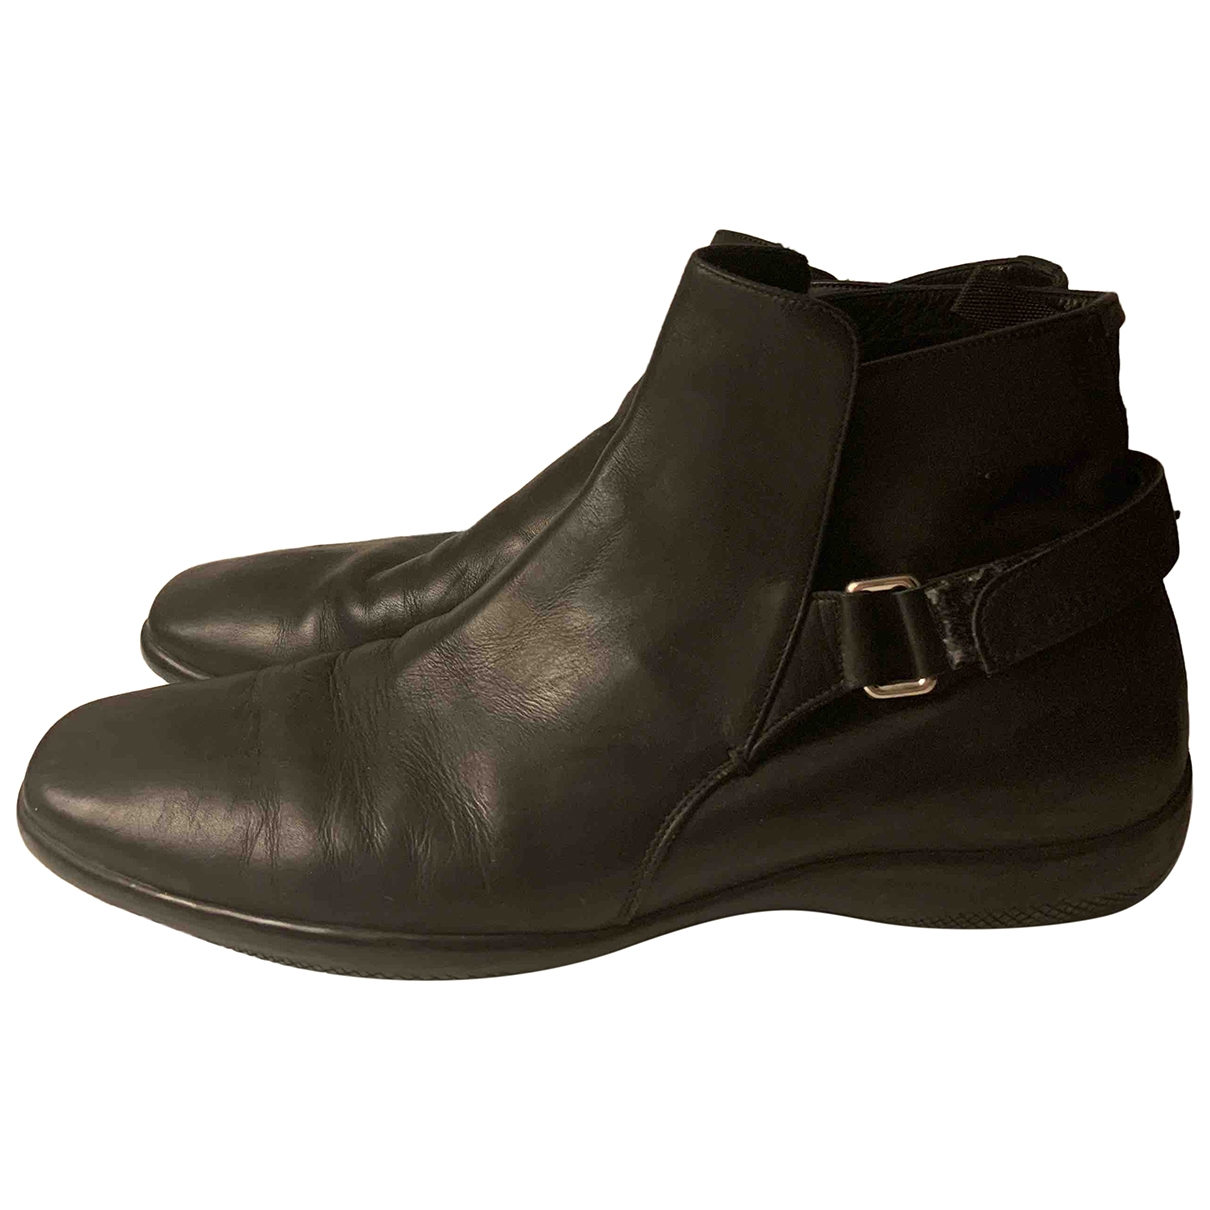 Prada \N Black Leather Boots for Men 9 UK